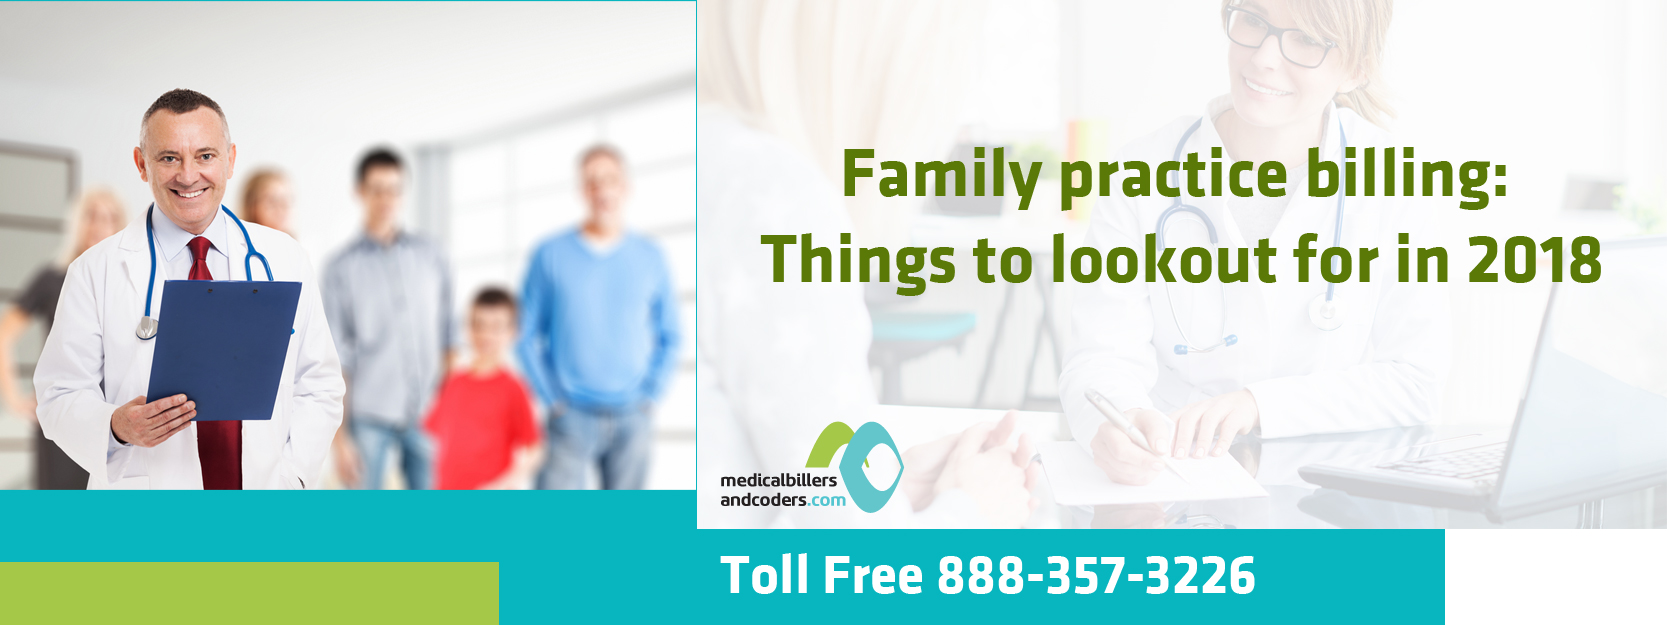 Family Practice Billing : Things To Lookout For In 2018